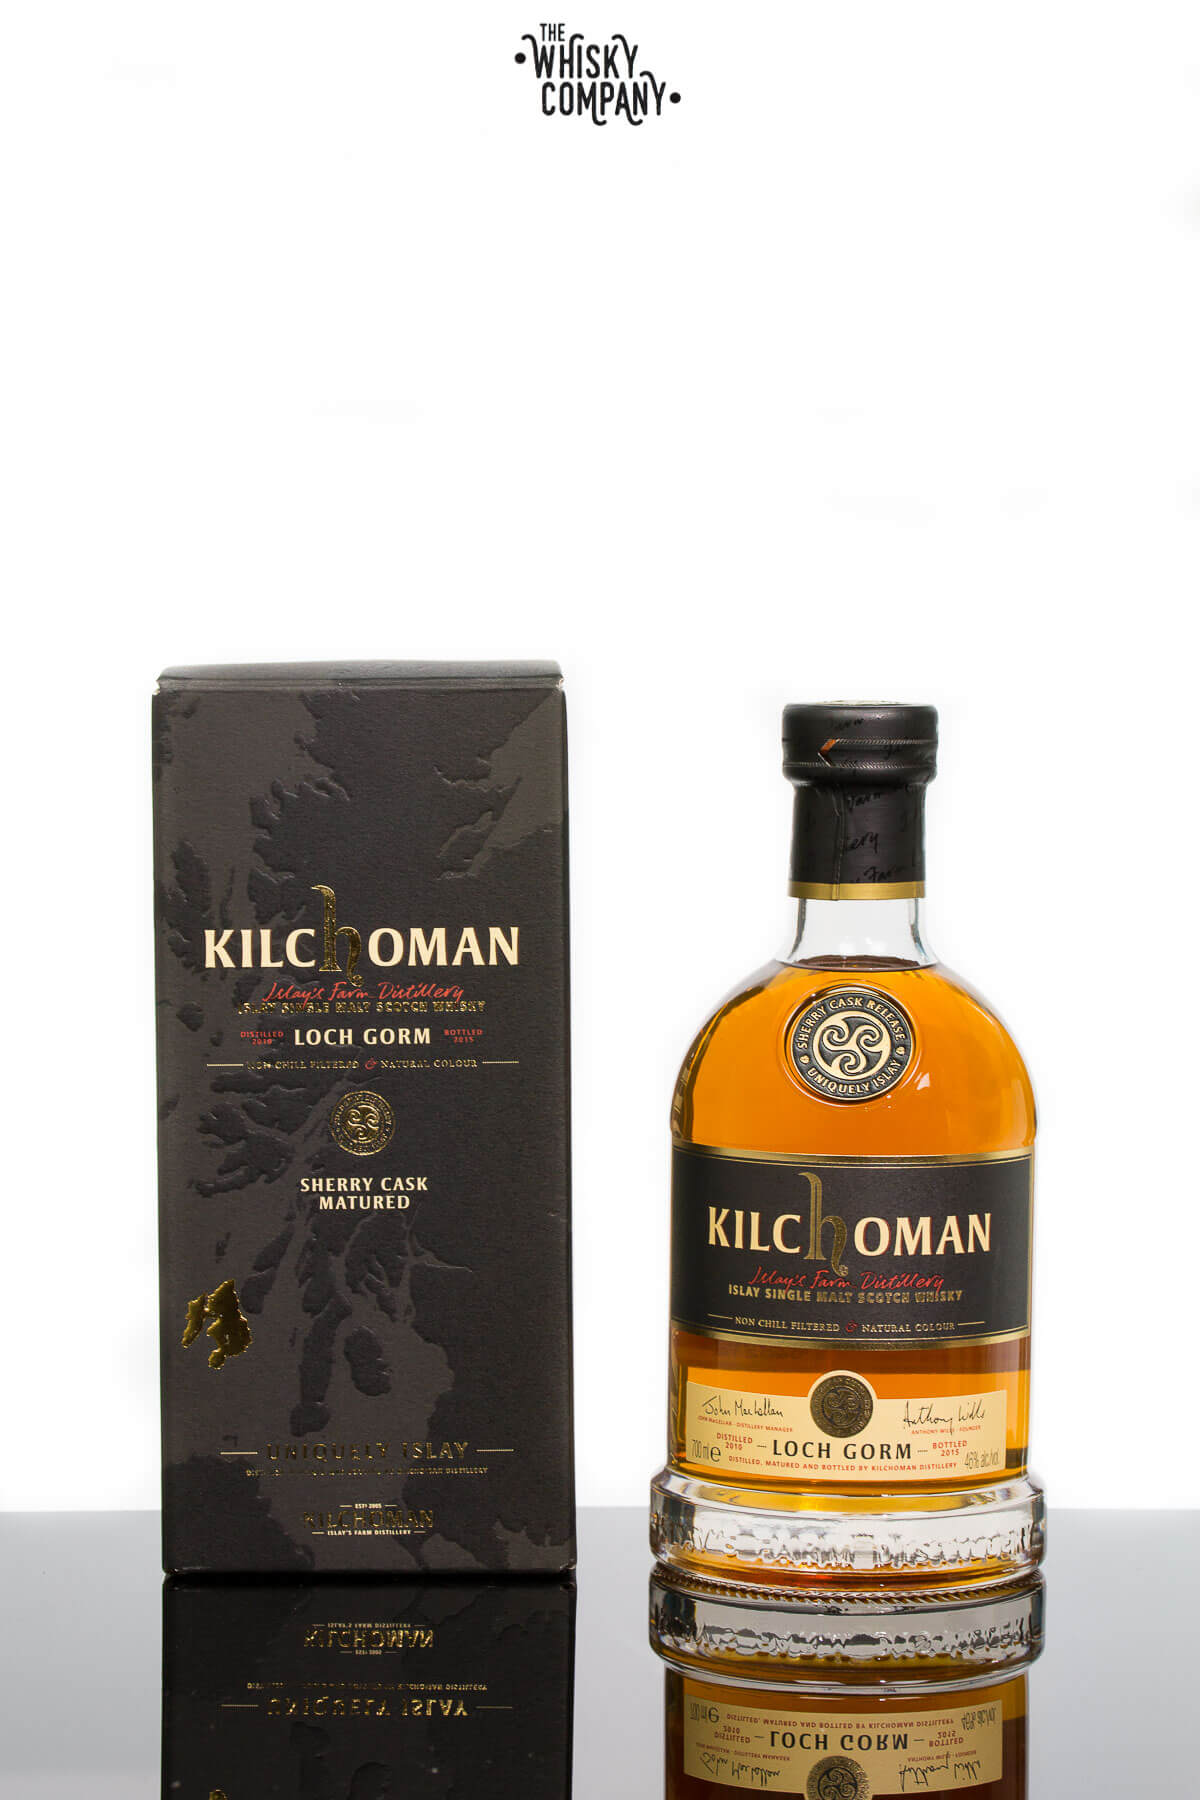 Kilchoman 2015 Loch Gorm Islay Single Malt Scotch Whisky (700ml)